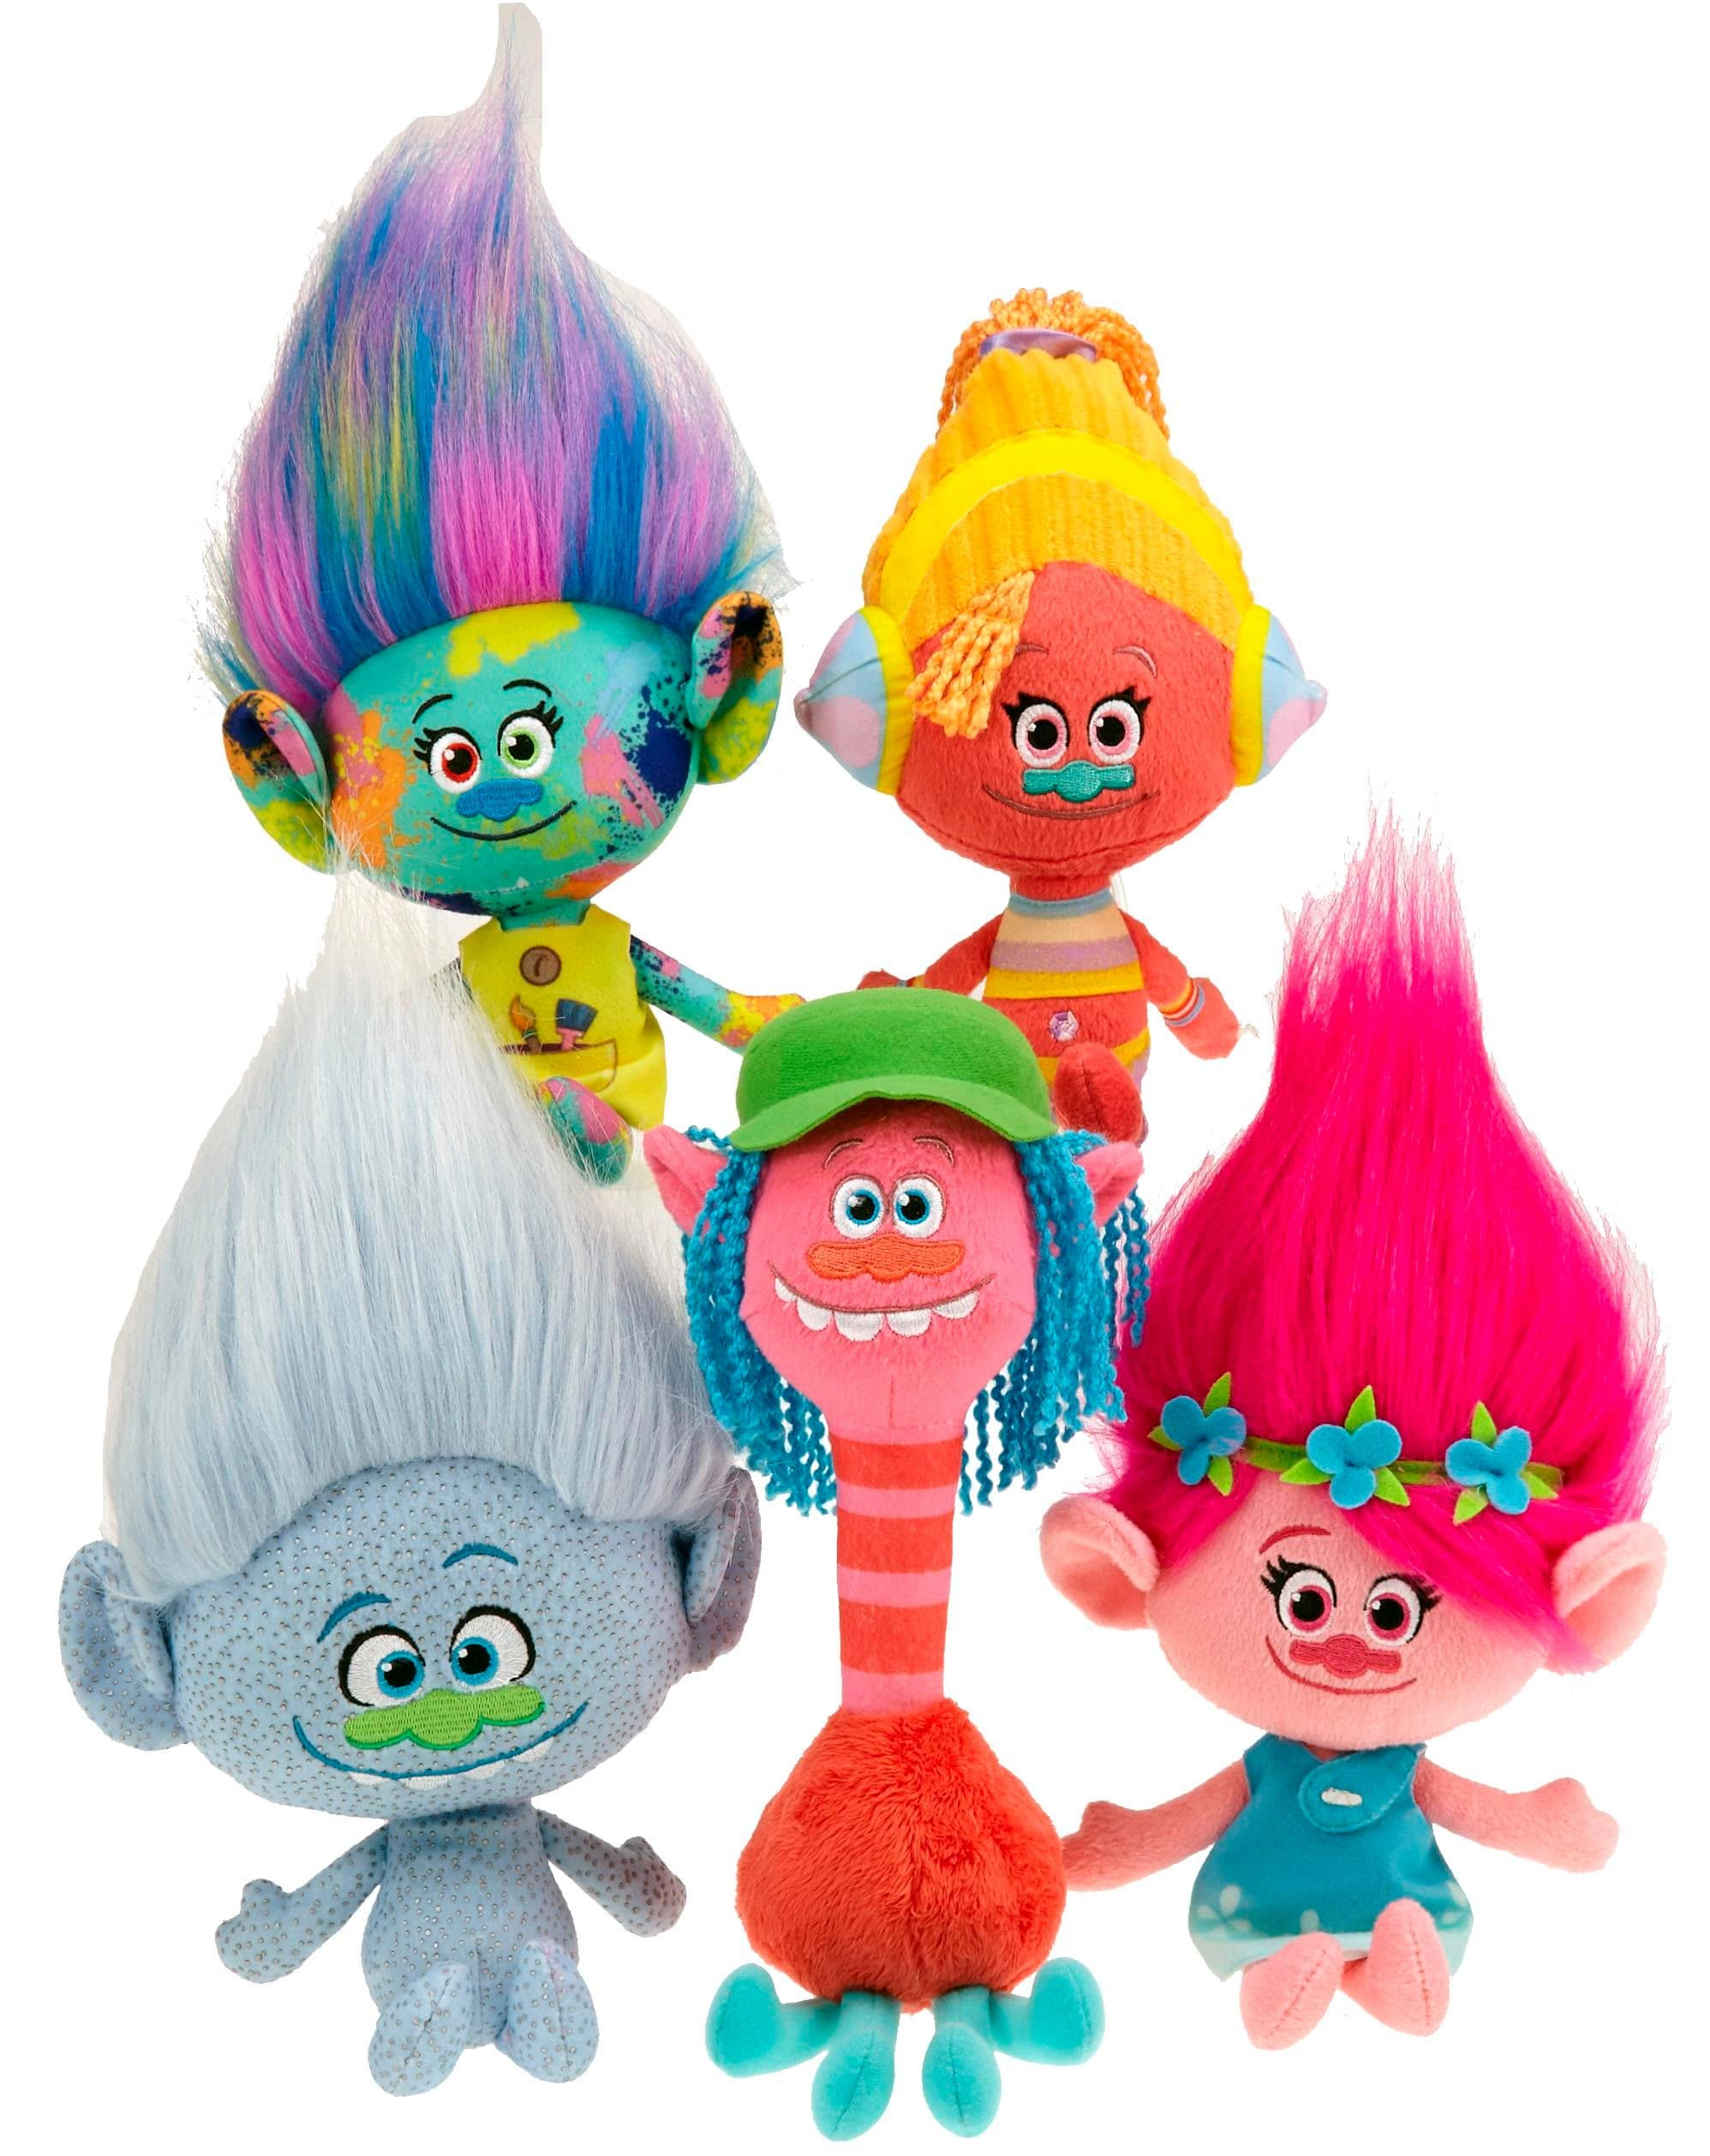 Trolls movie Full hd wallpapers Trolls movie For mobile